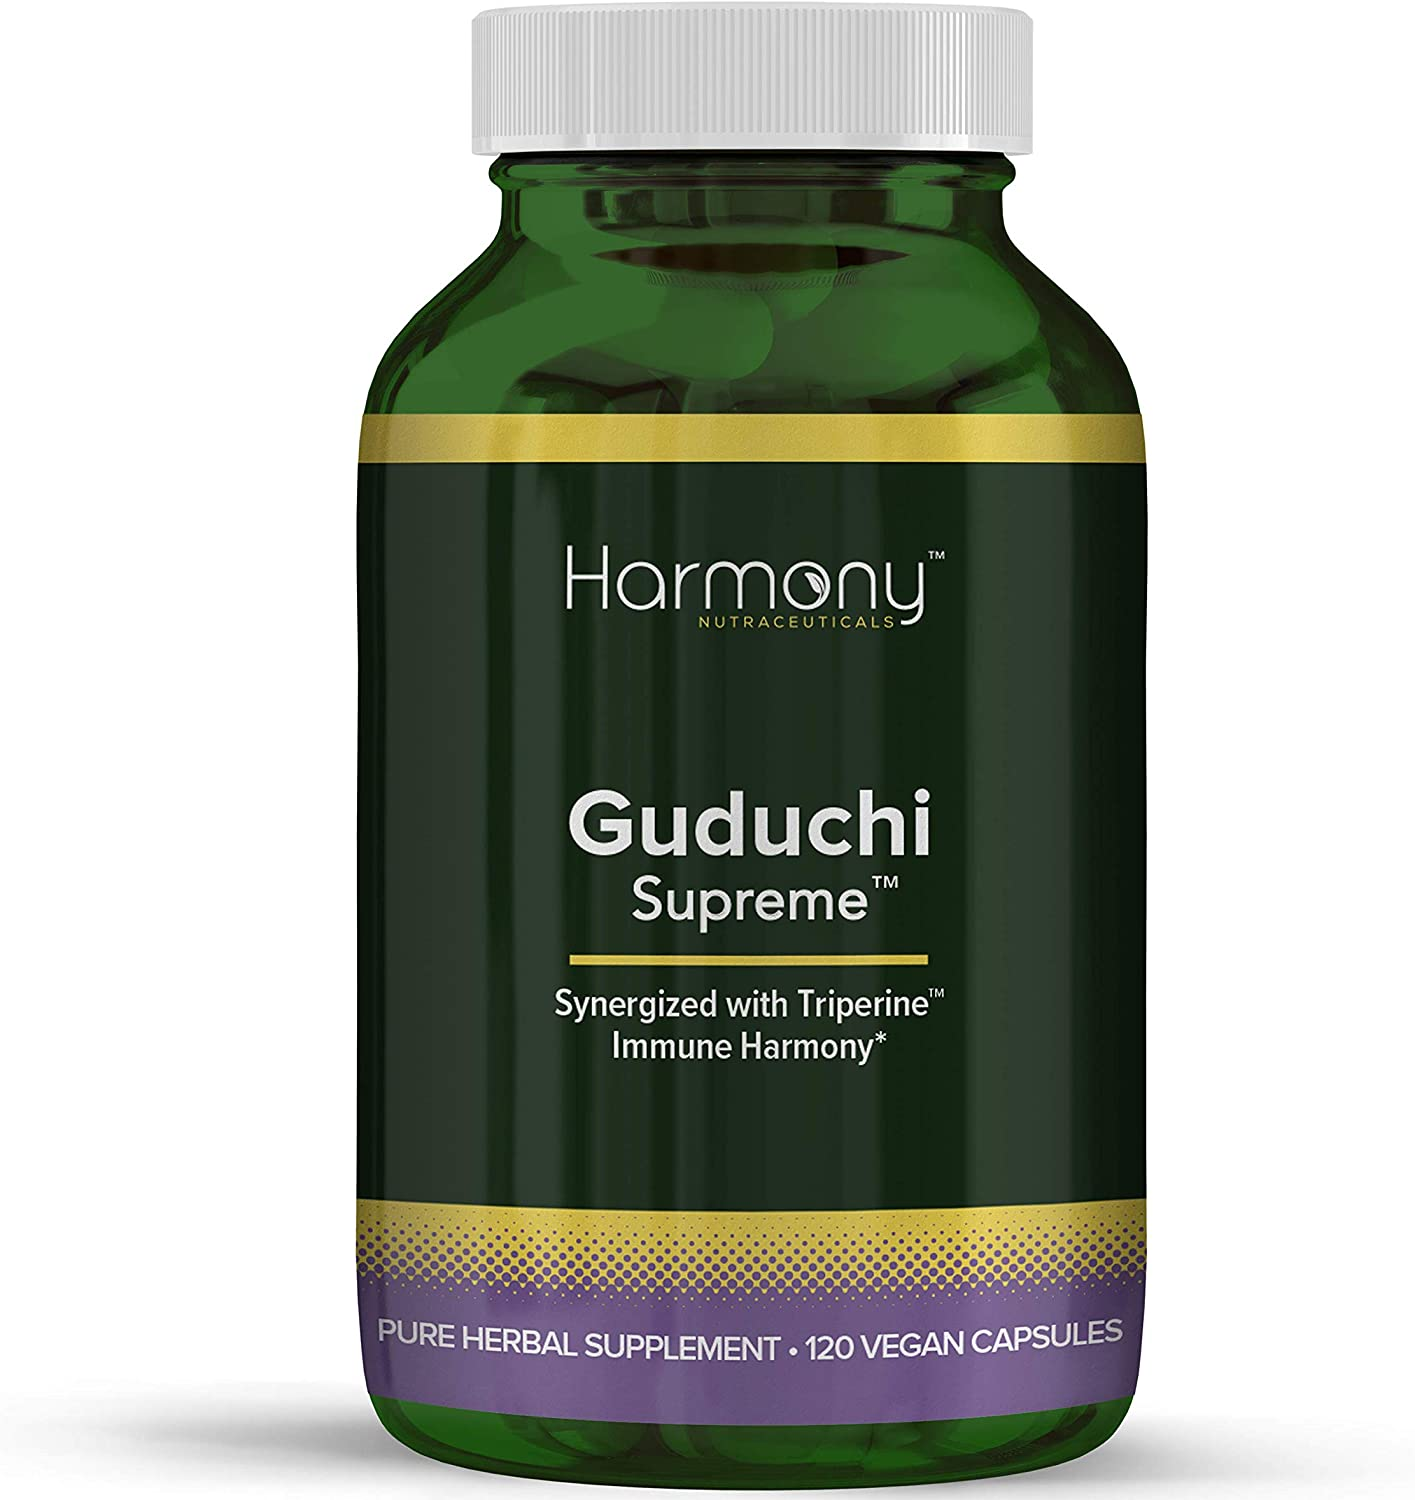 Guduchi Supreme, Highest Potency, Ayurvedic Herbal Immune Support, Organic, 120 Vegan caps, Maximum Bio-Availability